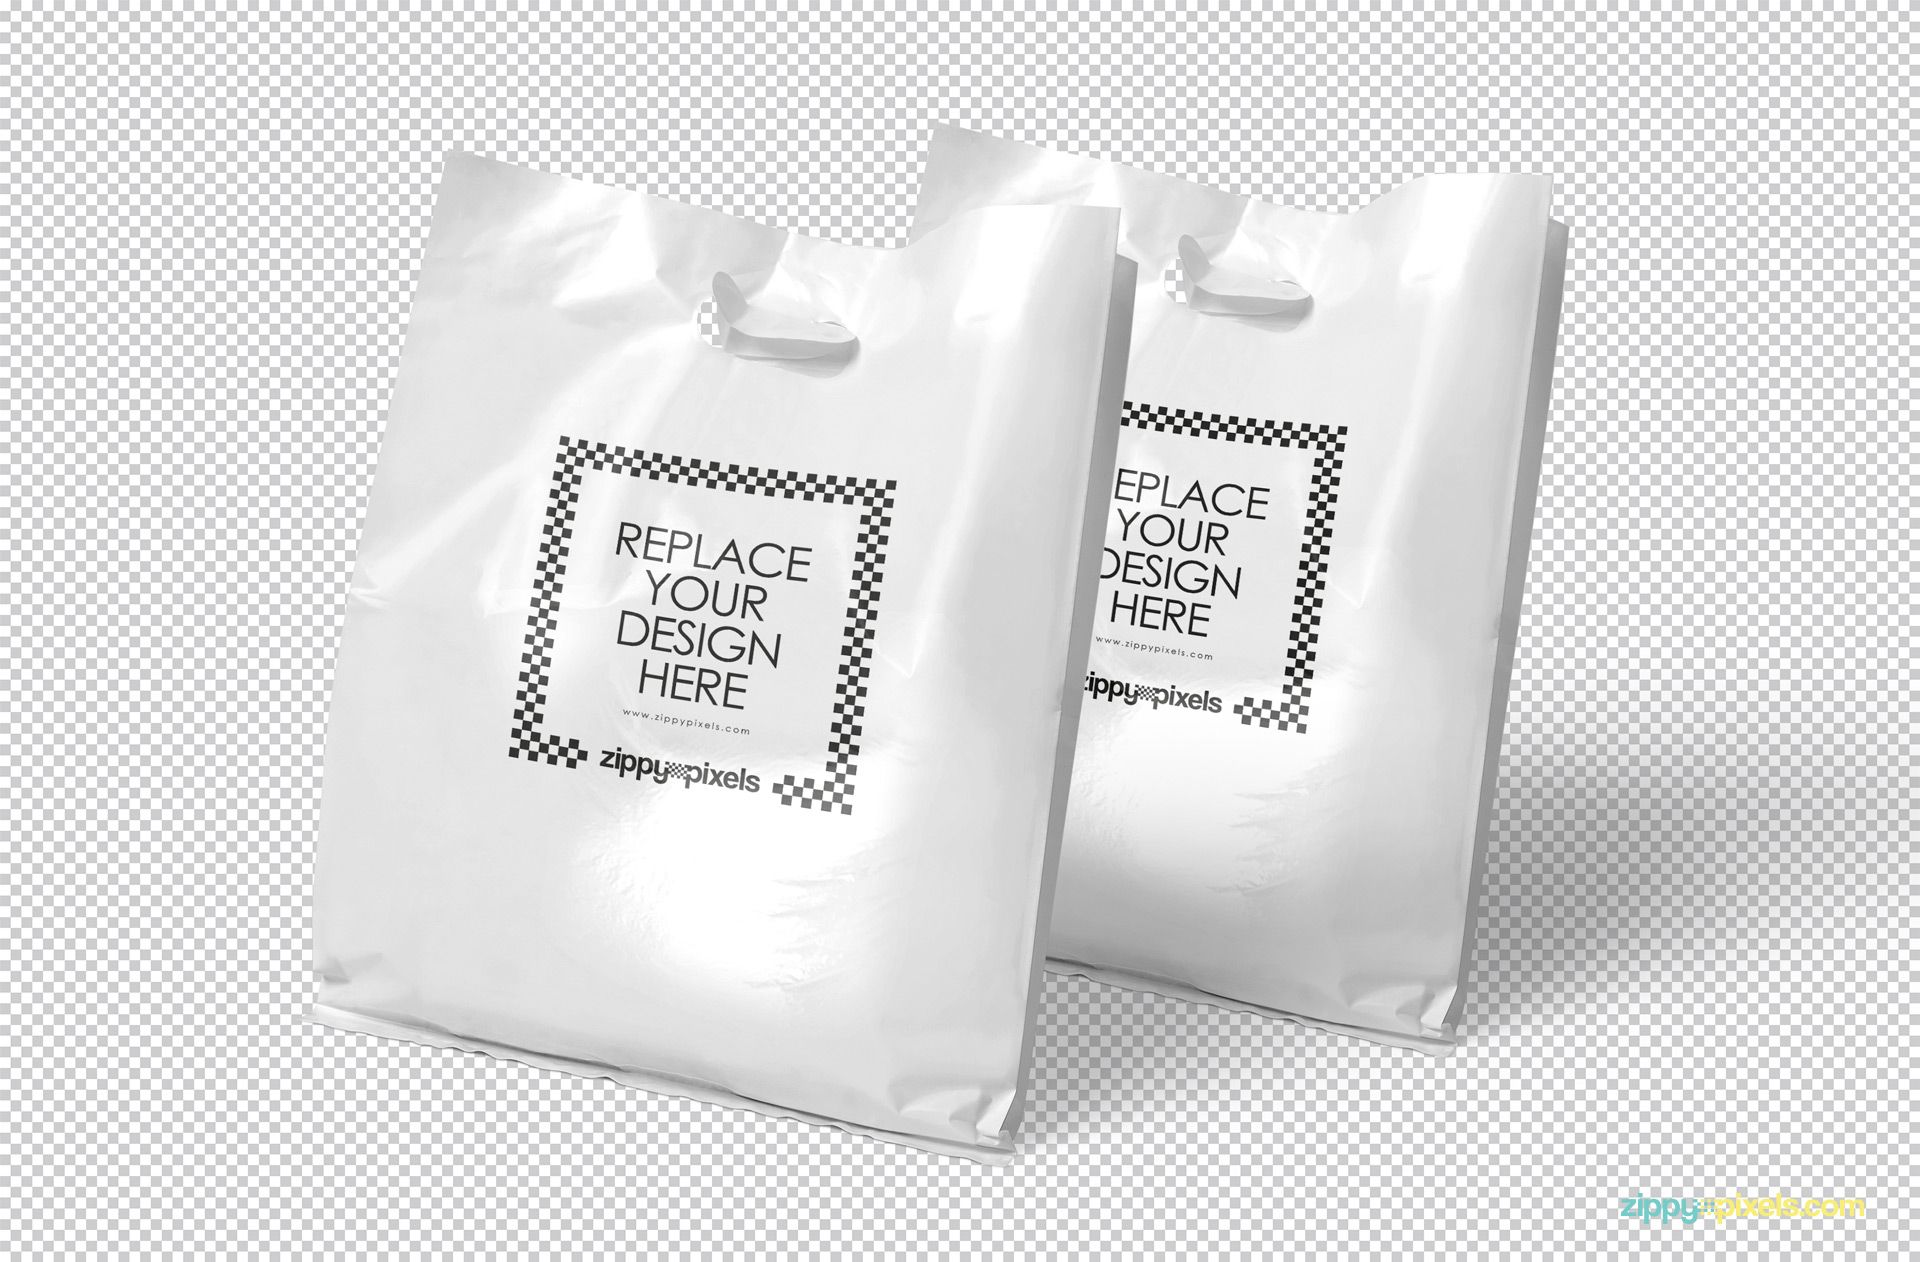 Download Free Plastic Bag Mockup Zippypixels Bag Mockup Plastic Bag Design Packaging Mockup